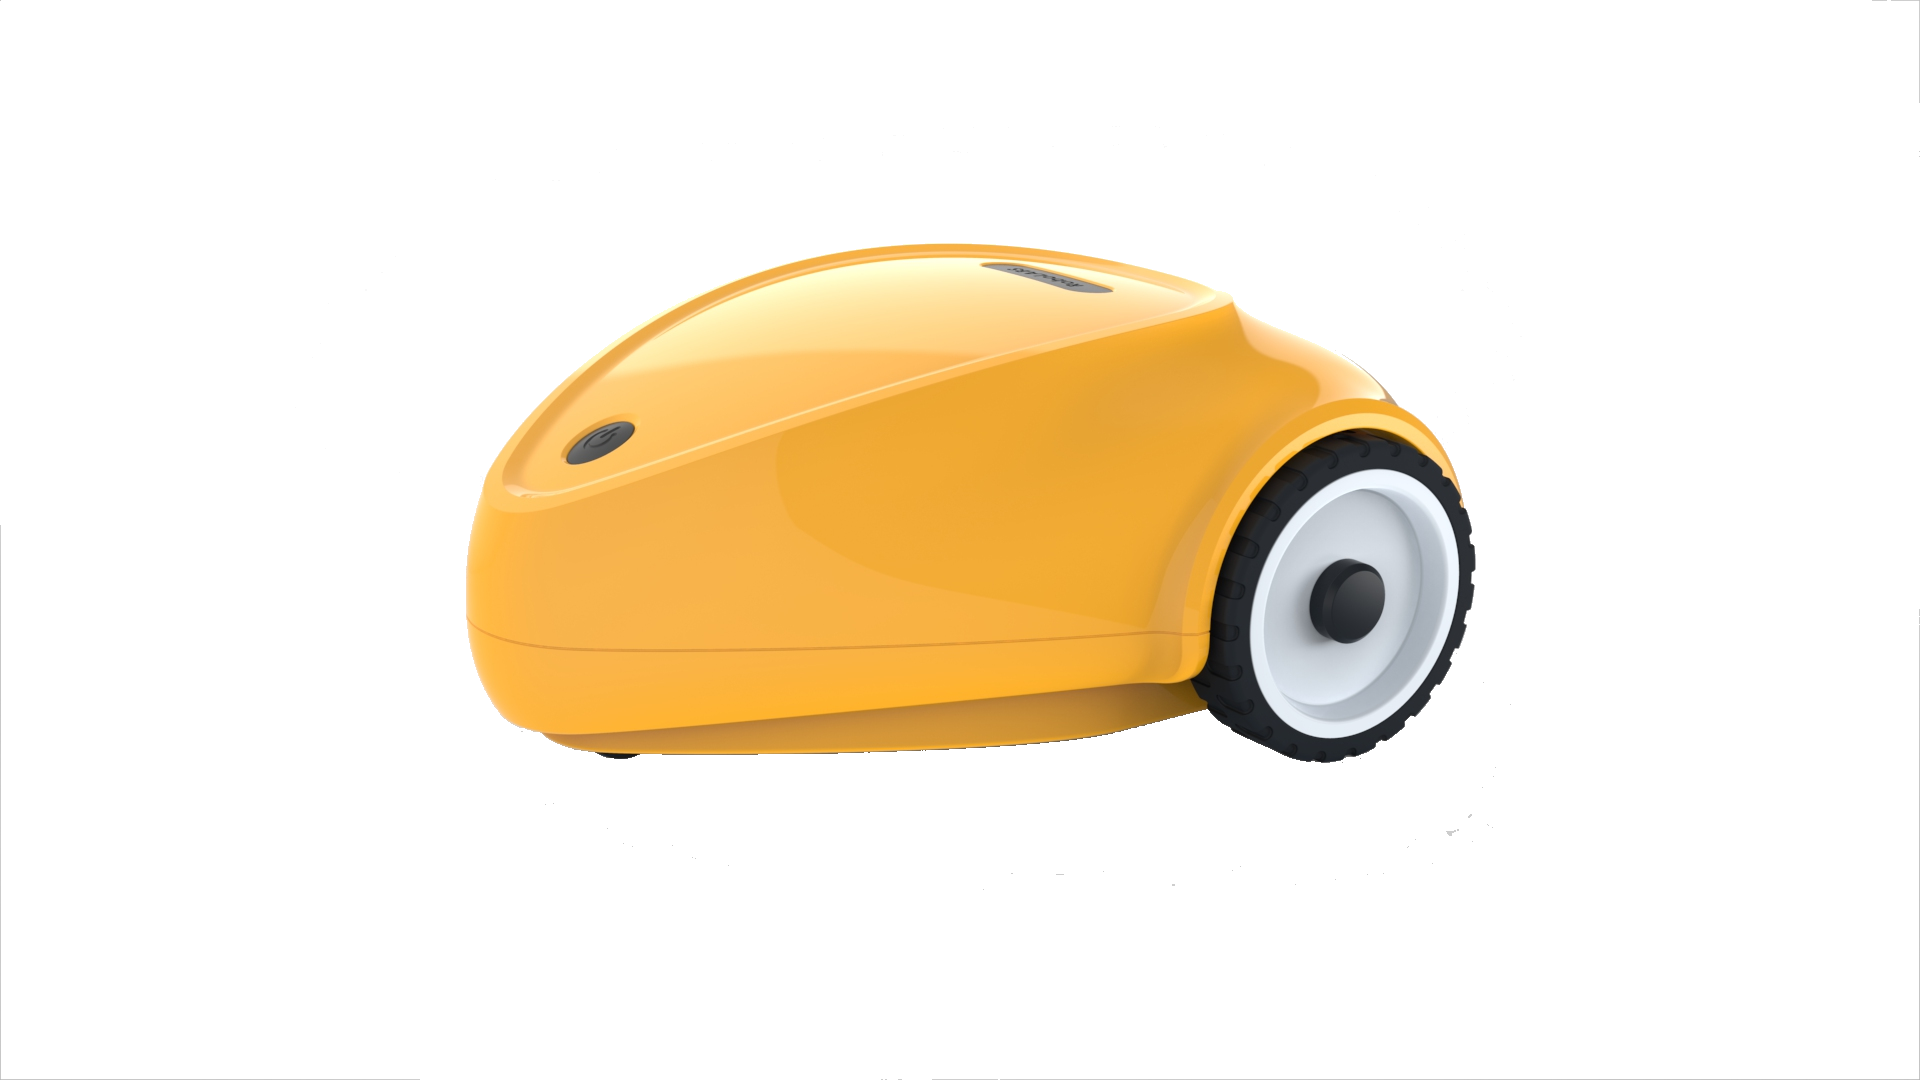 SmartMow Residential Robot Lawn Mower